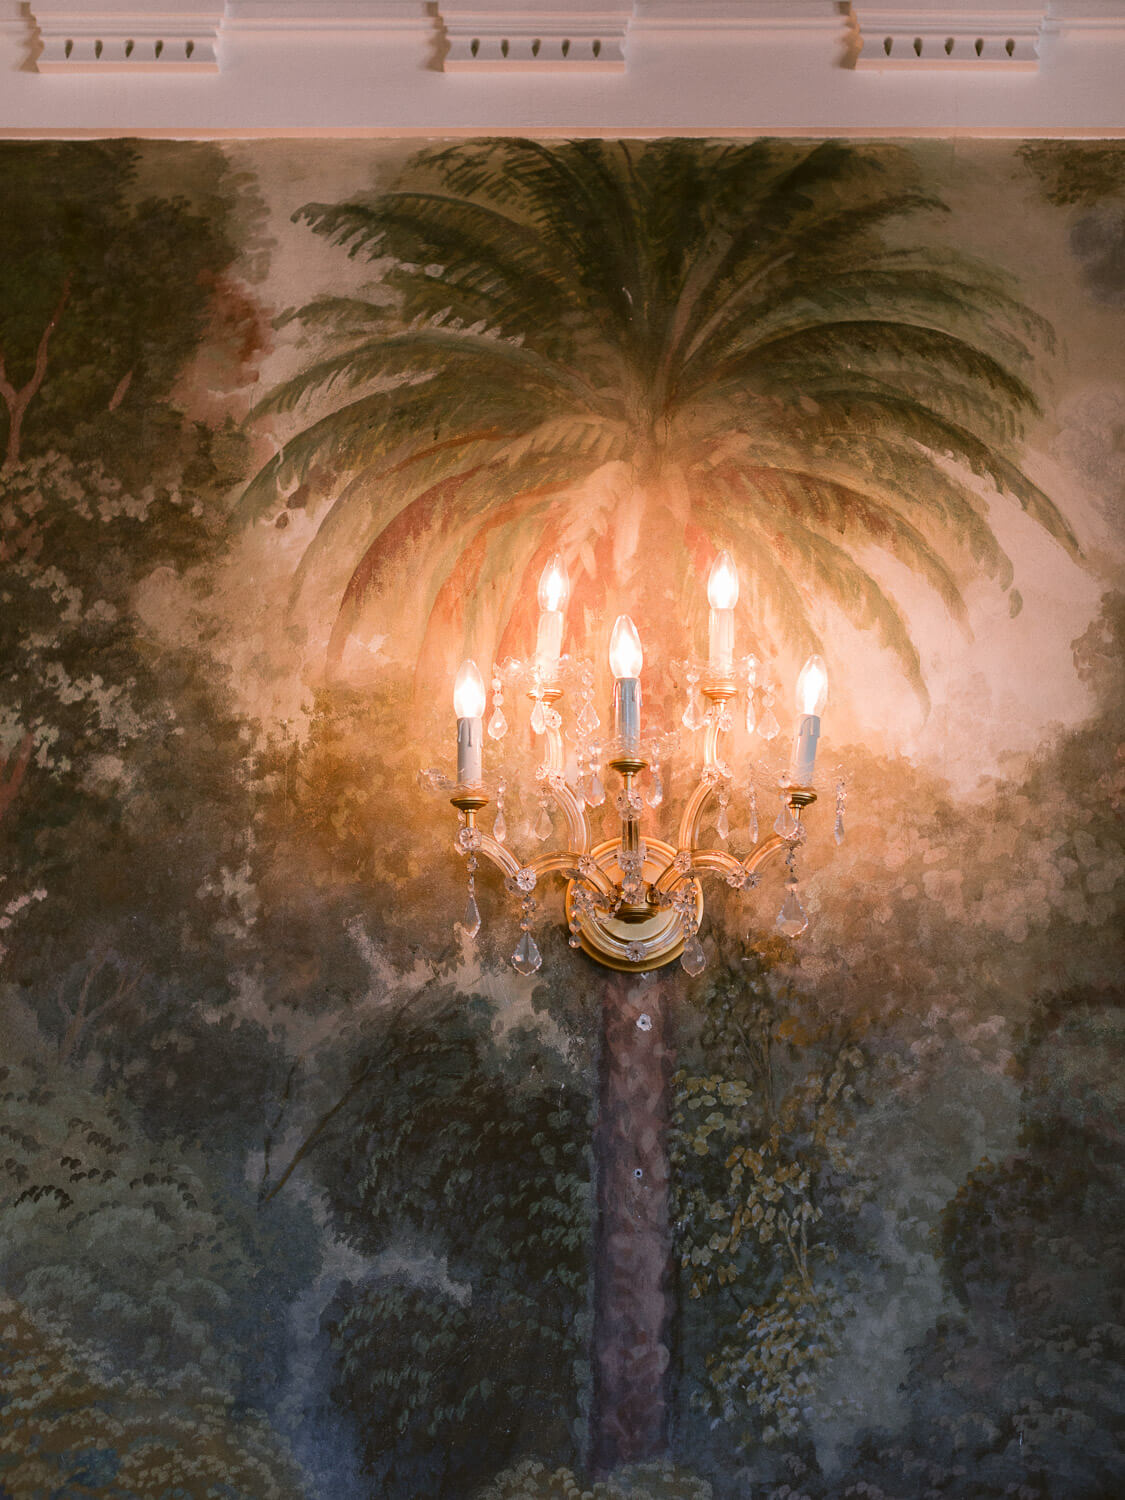 wall chandelier over vintage palm tree illustration on the wall in Casa dos Penedos Sintra by Portugal Wedding Photographer